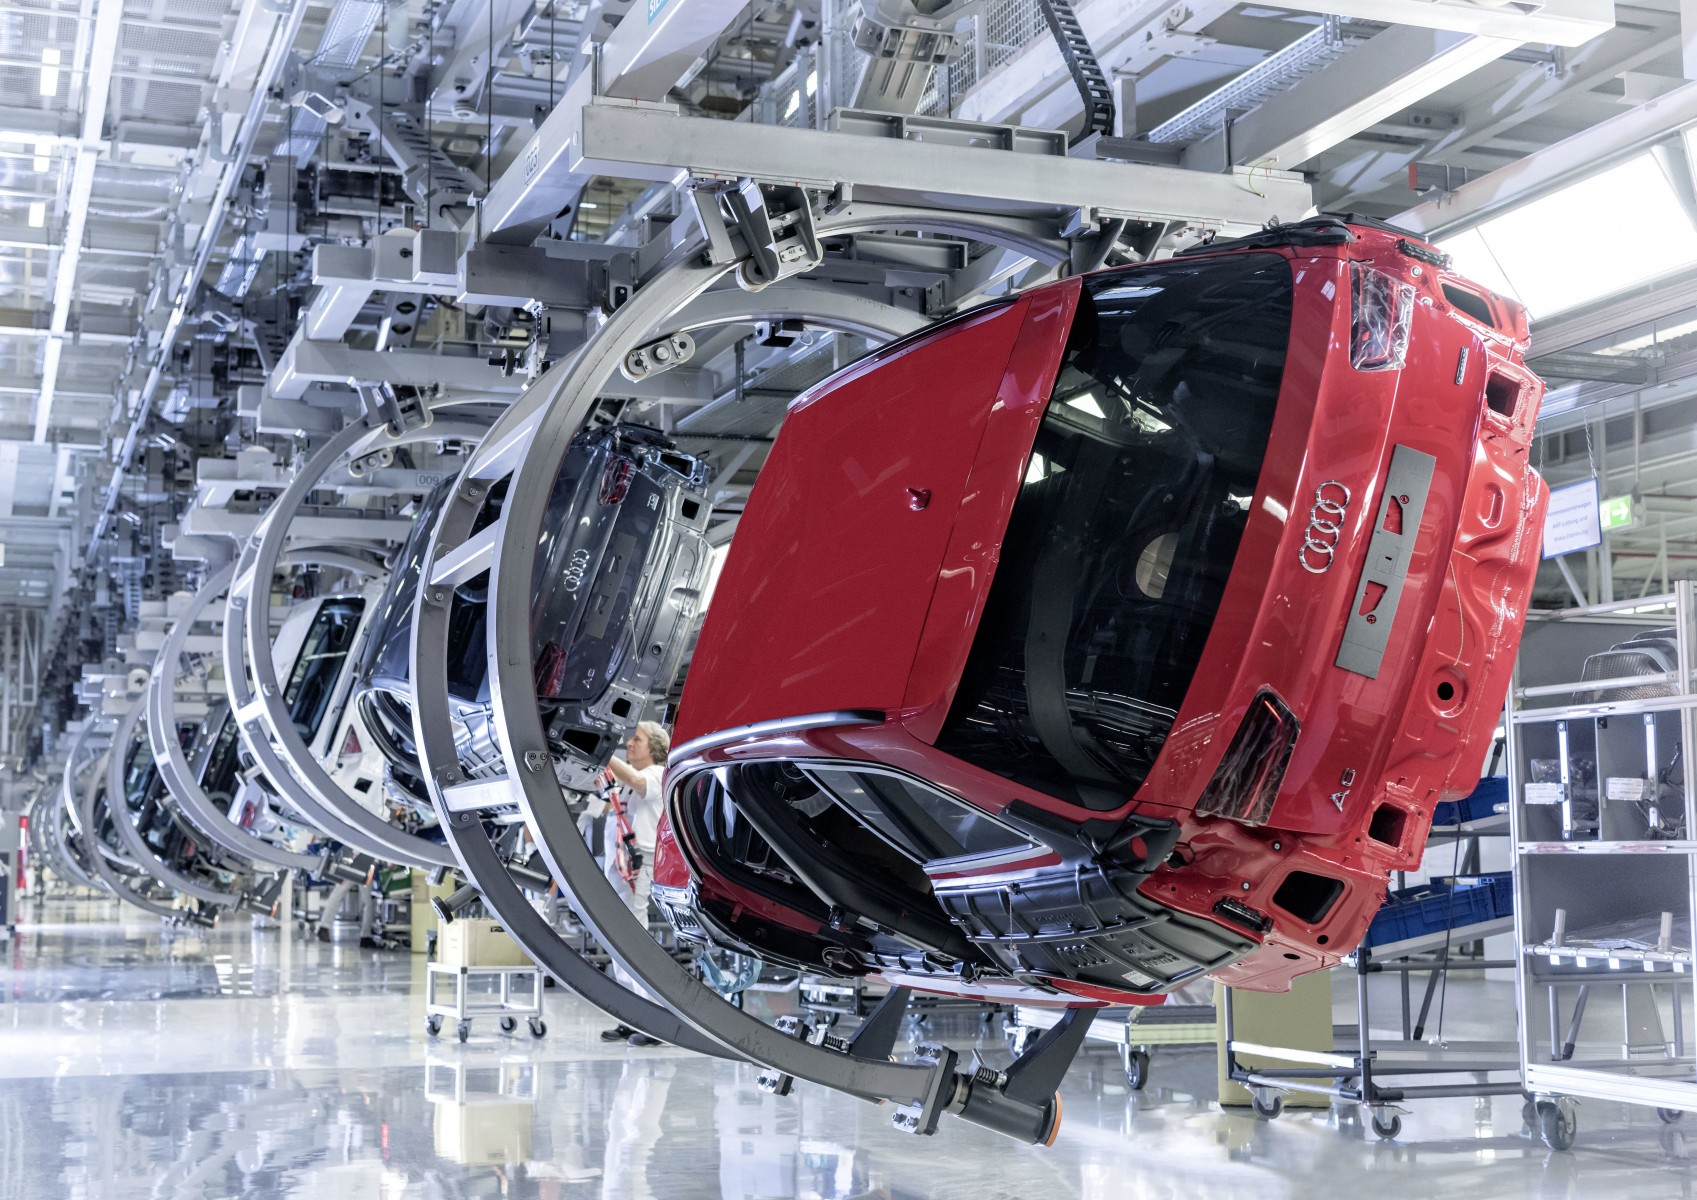 Used Cars Nl >> Lean Production Award voor Audi-fabriek in Neckarsulm